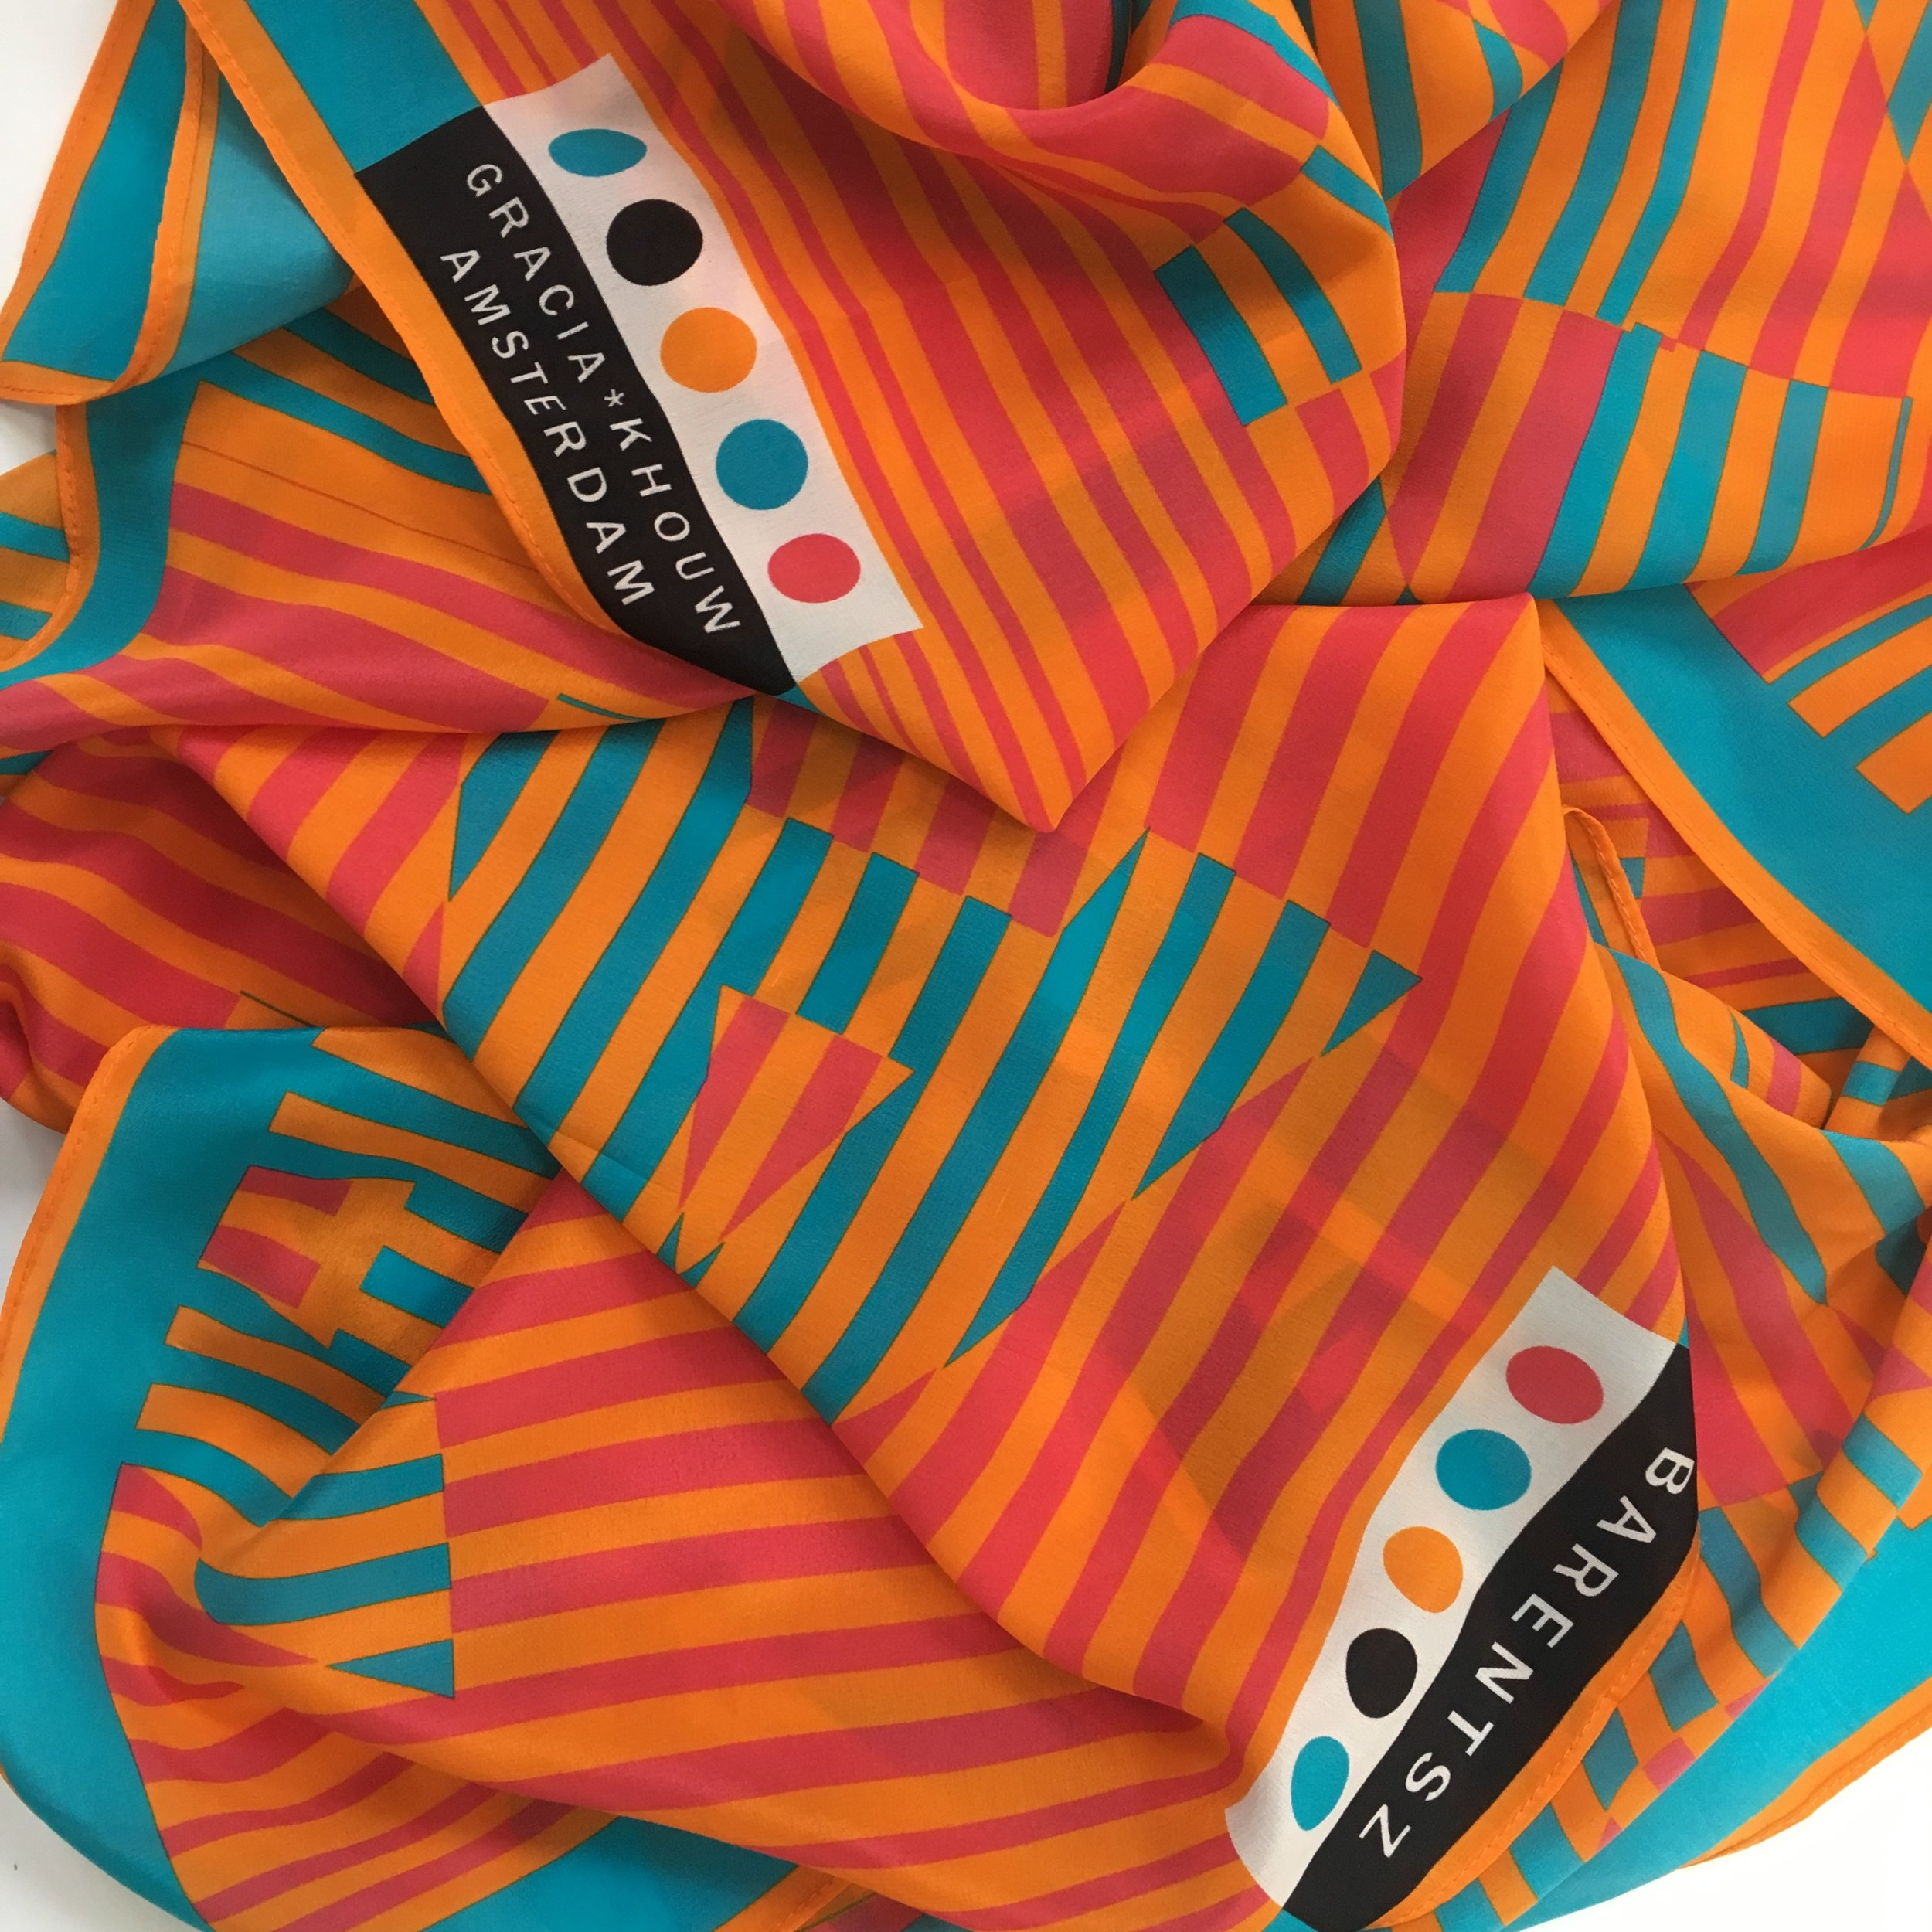 IAMNOT limited edition / scarf, 100% crepe de chine, 70x170cm, €89